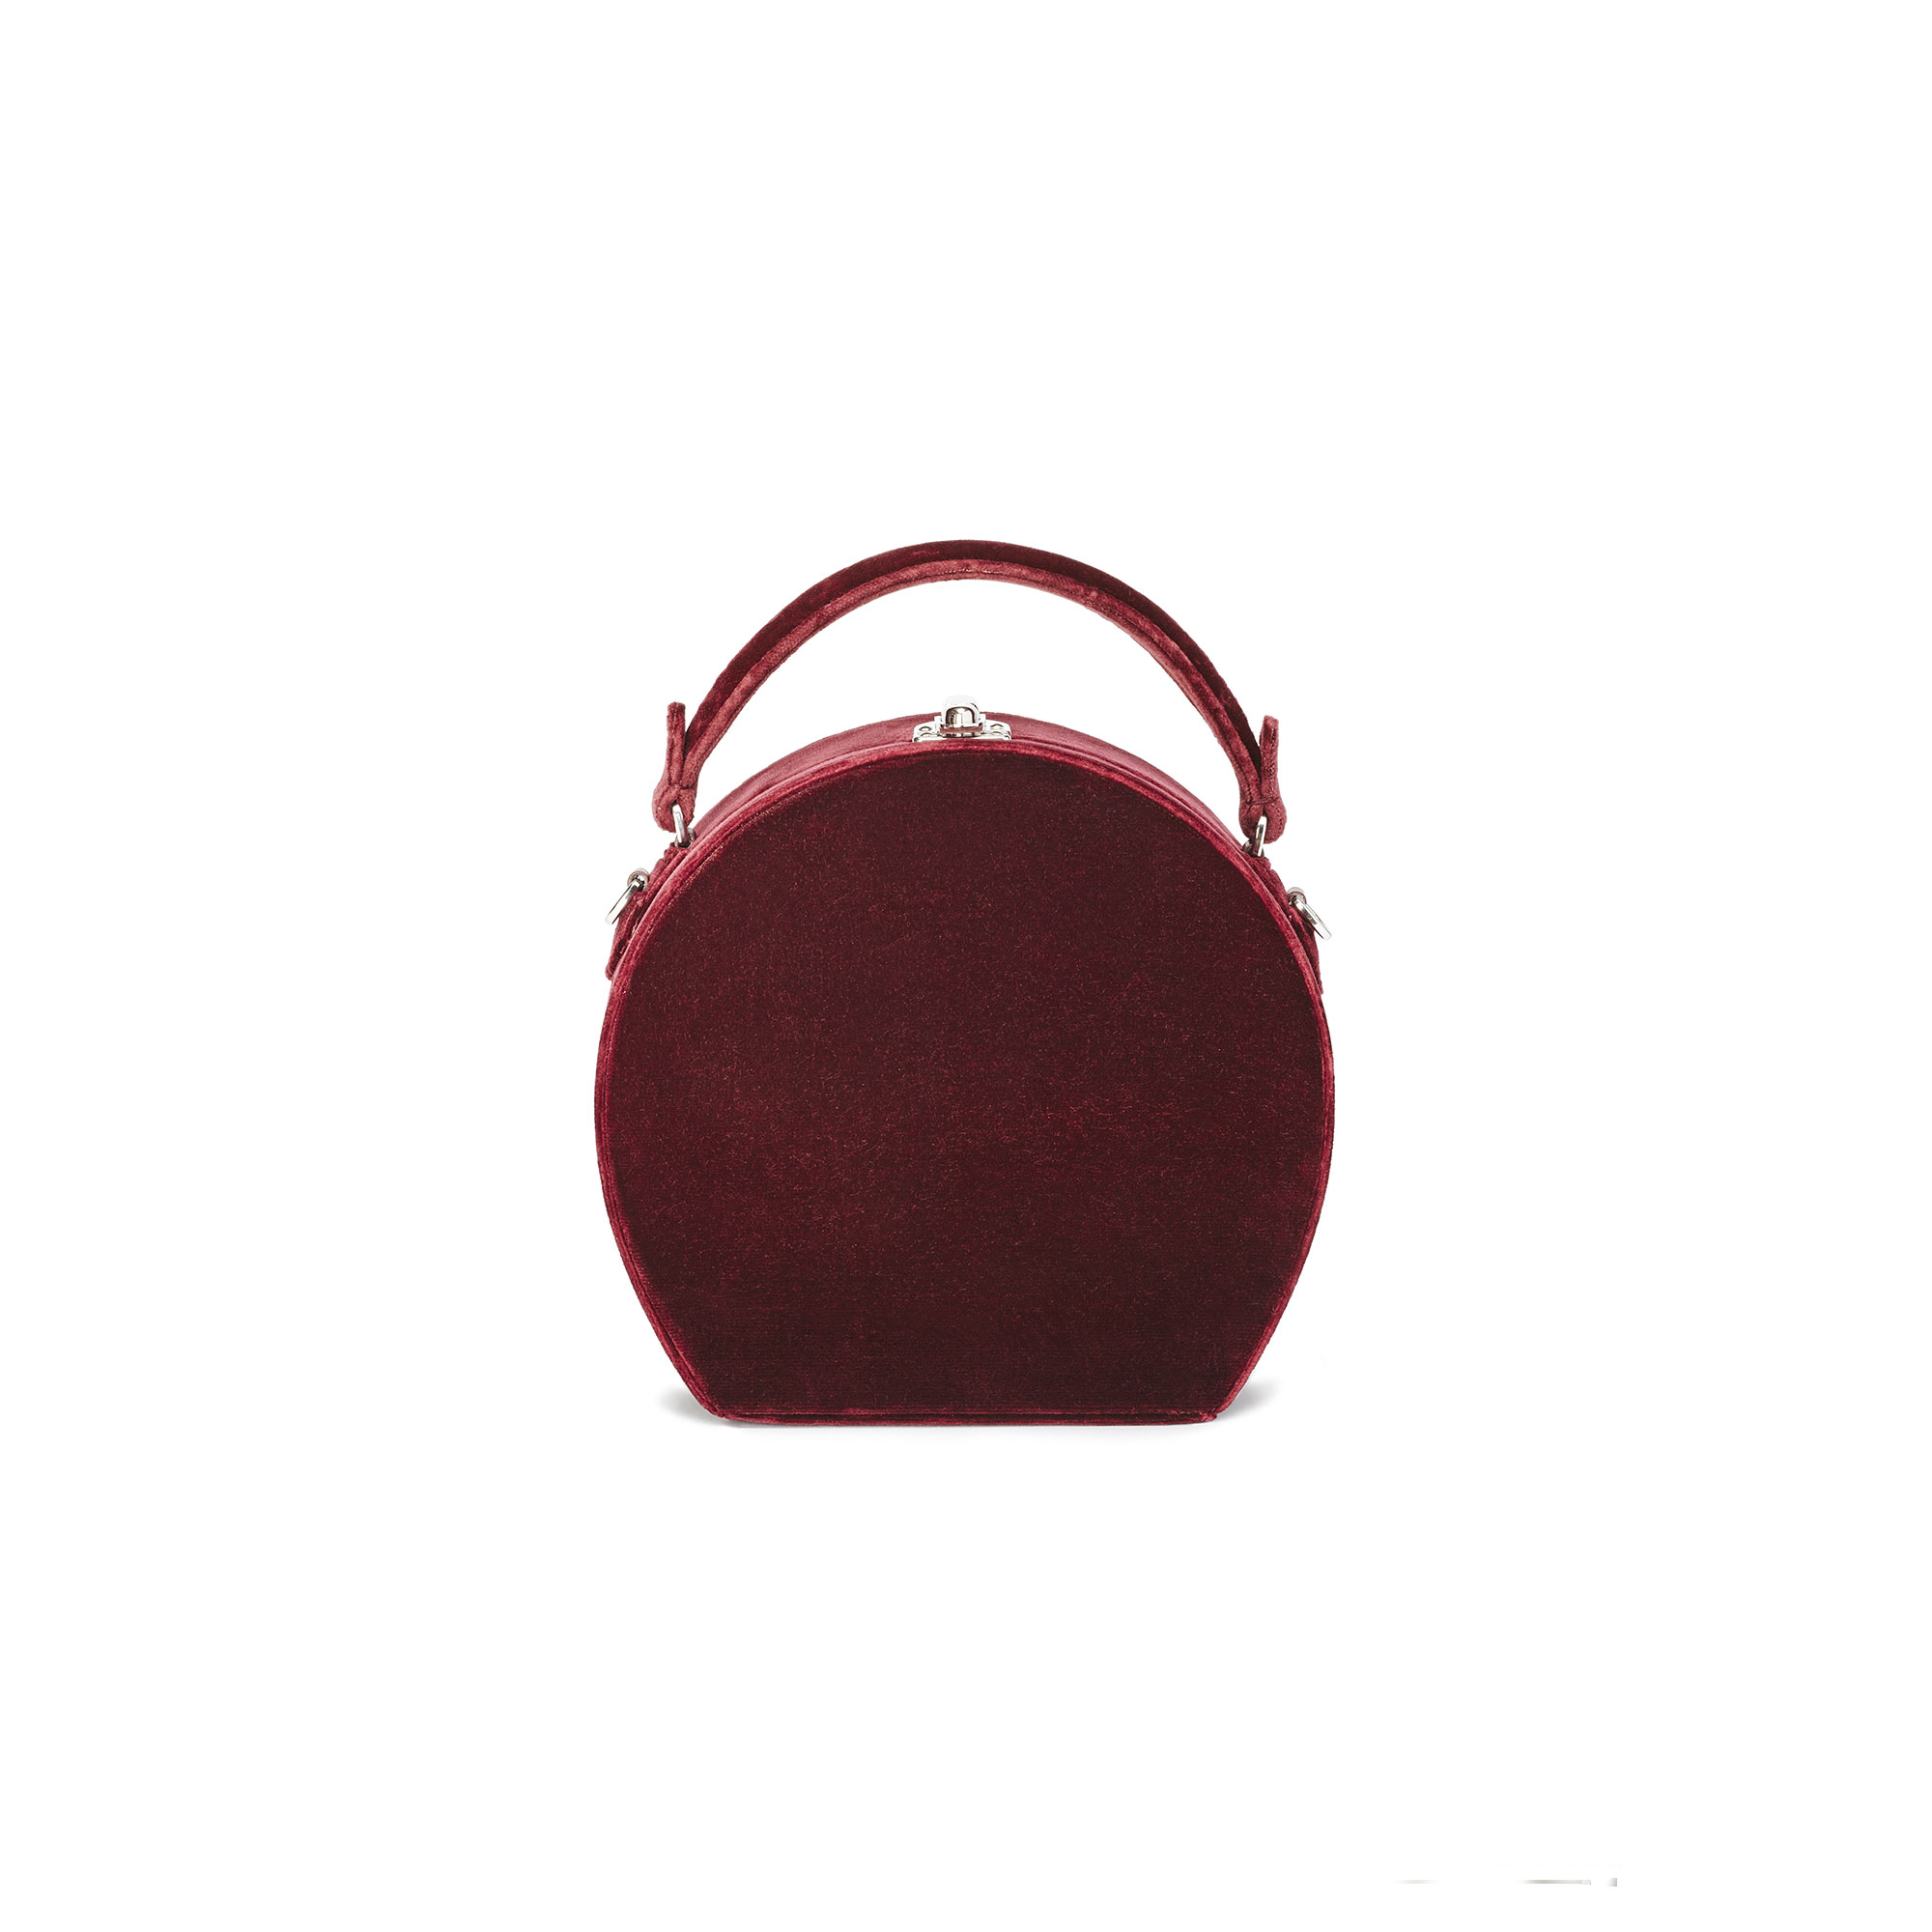 Regular-Bertoncina-bordeaux-velvet-bag-Bertoni-1949